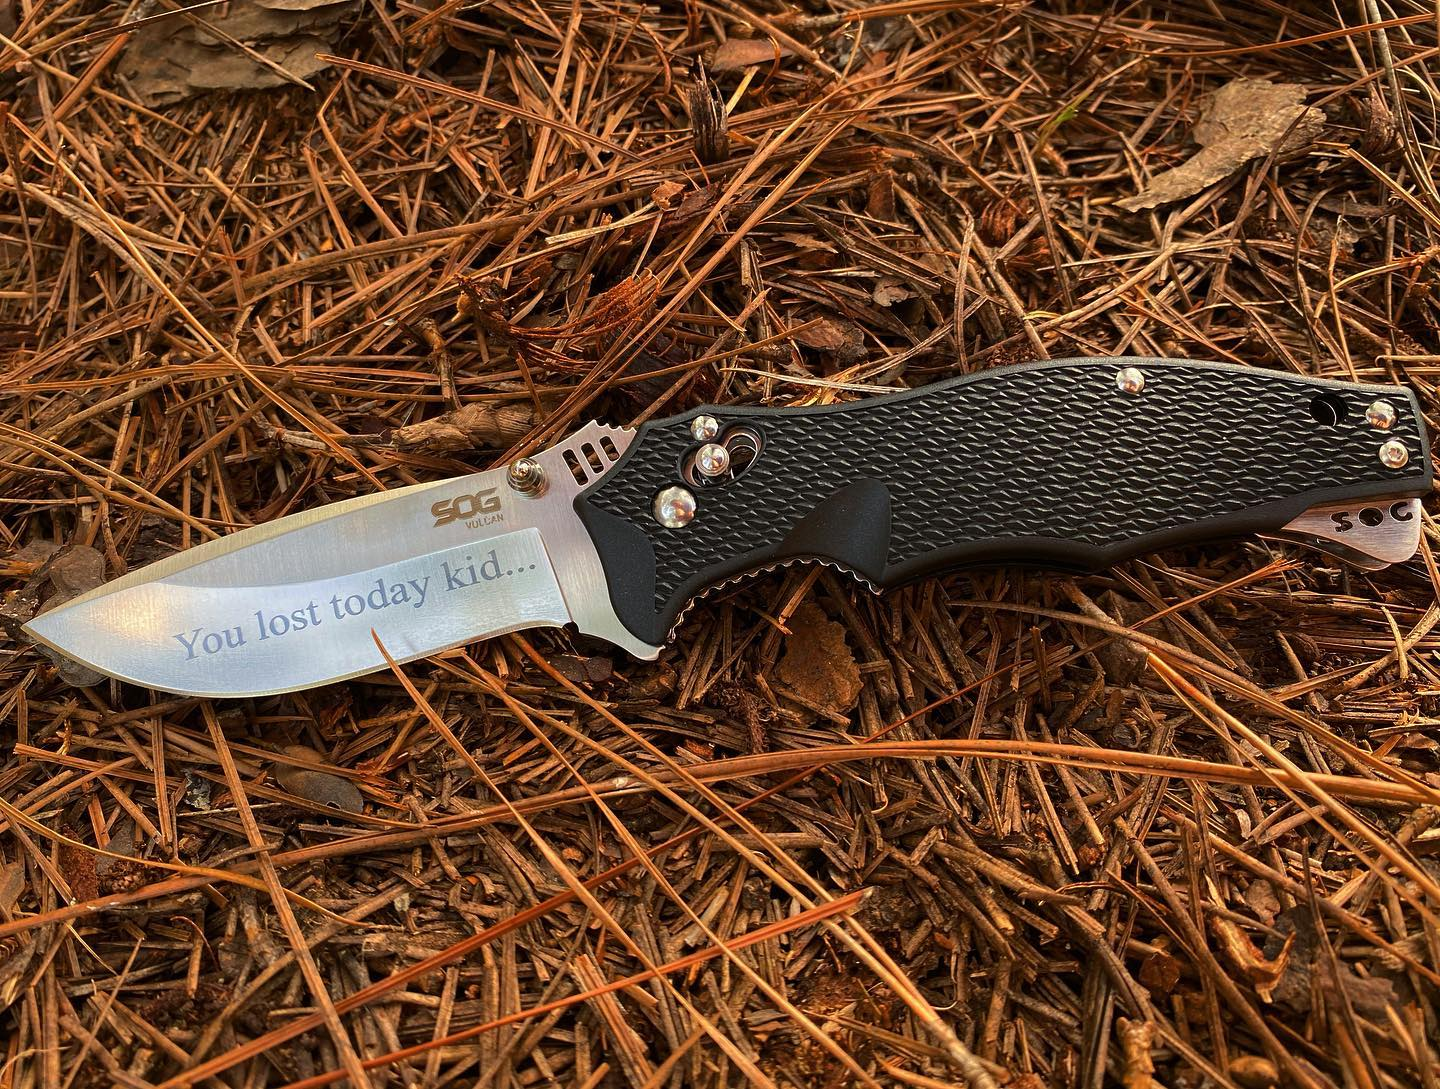 SOG Vulcan VL-01 knife was just engraved. You lost today... but quitters never win and winners never quit! Hang on to your dreams and make it happen.  #vulcan #VL-01 #beawinner #neverquit